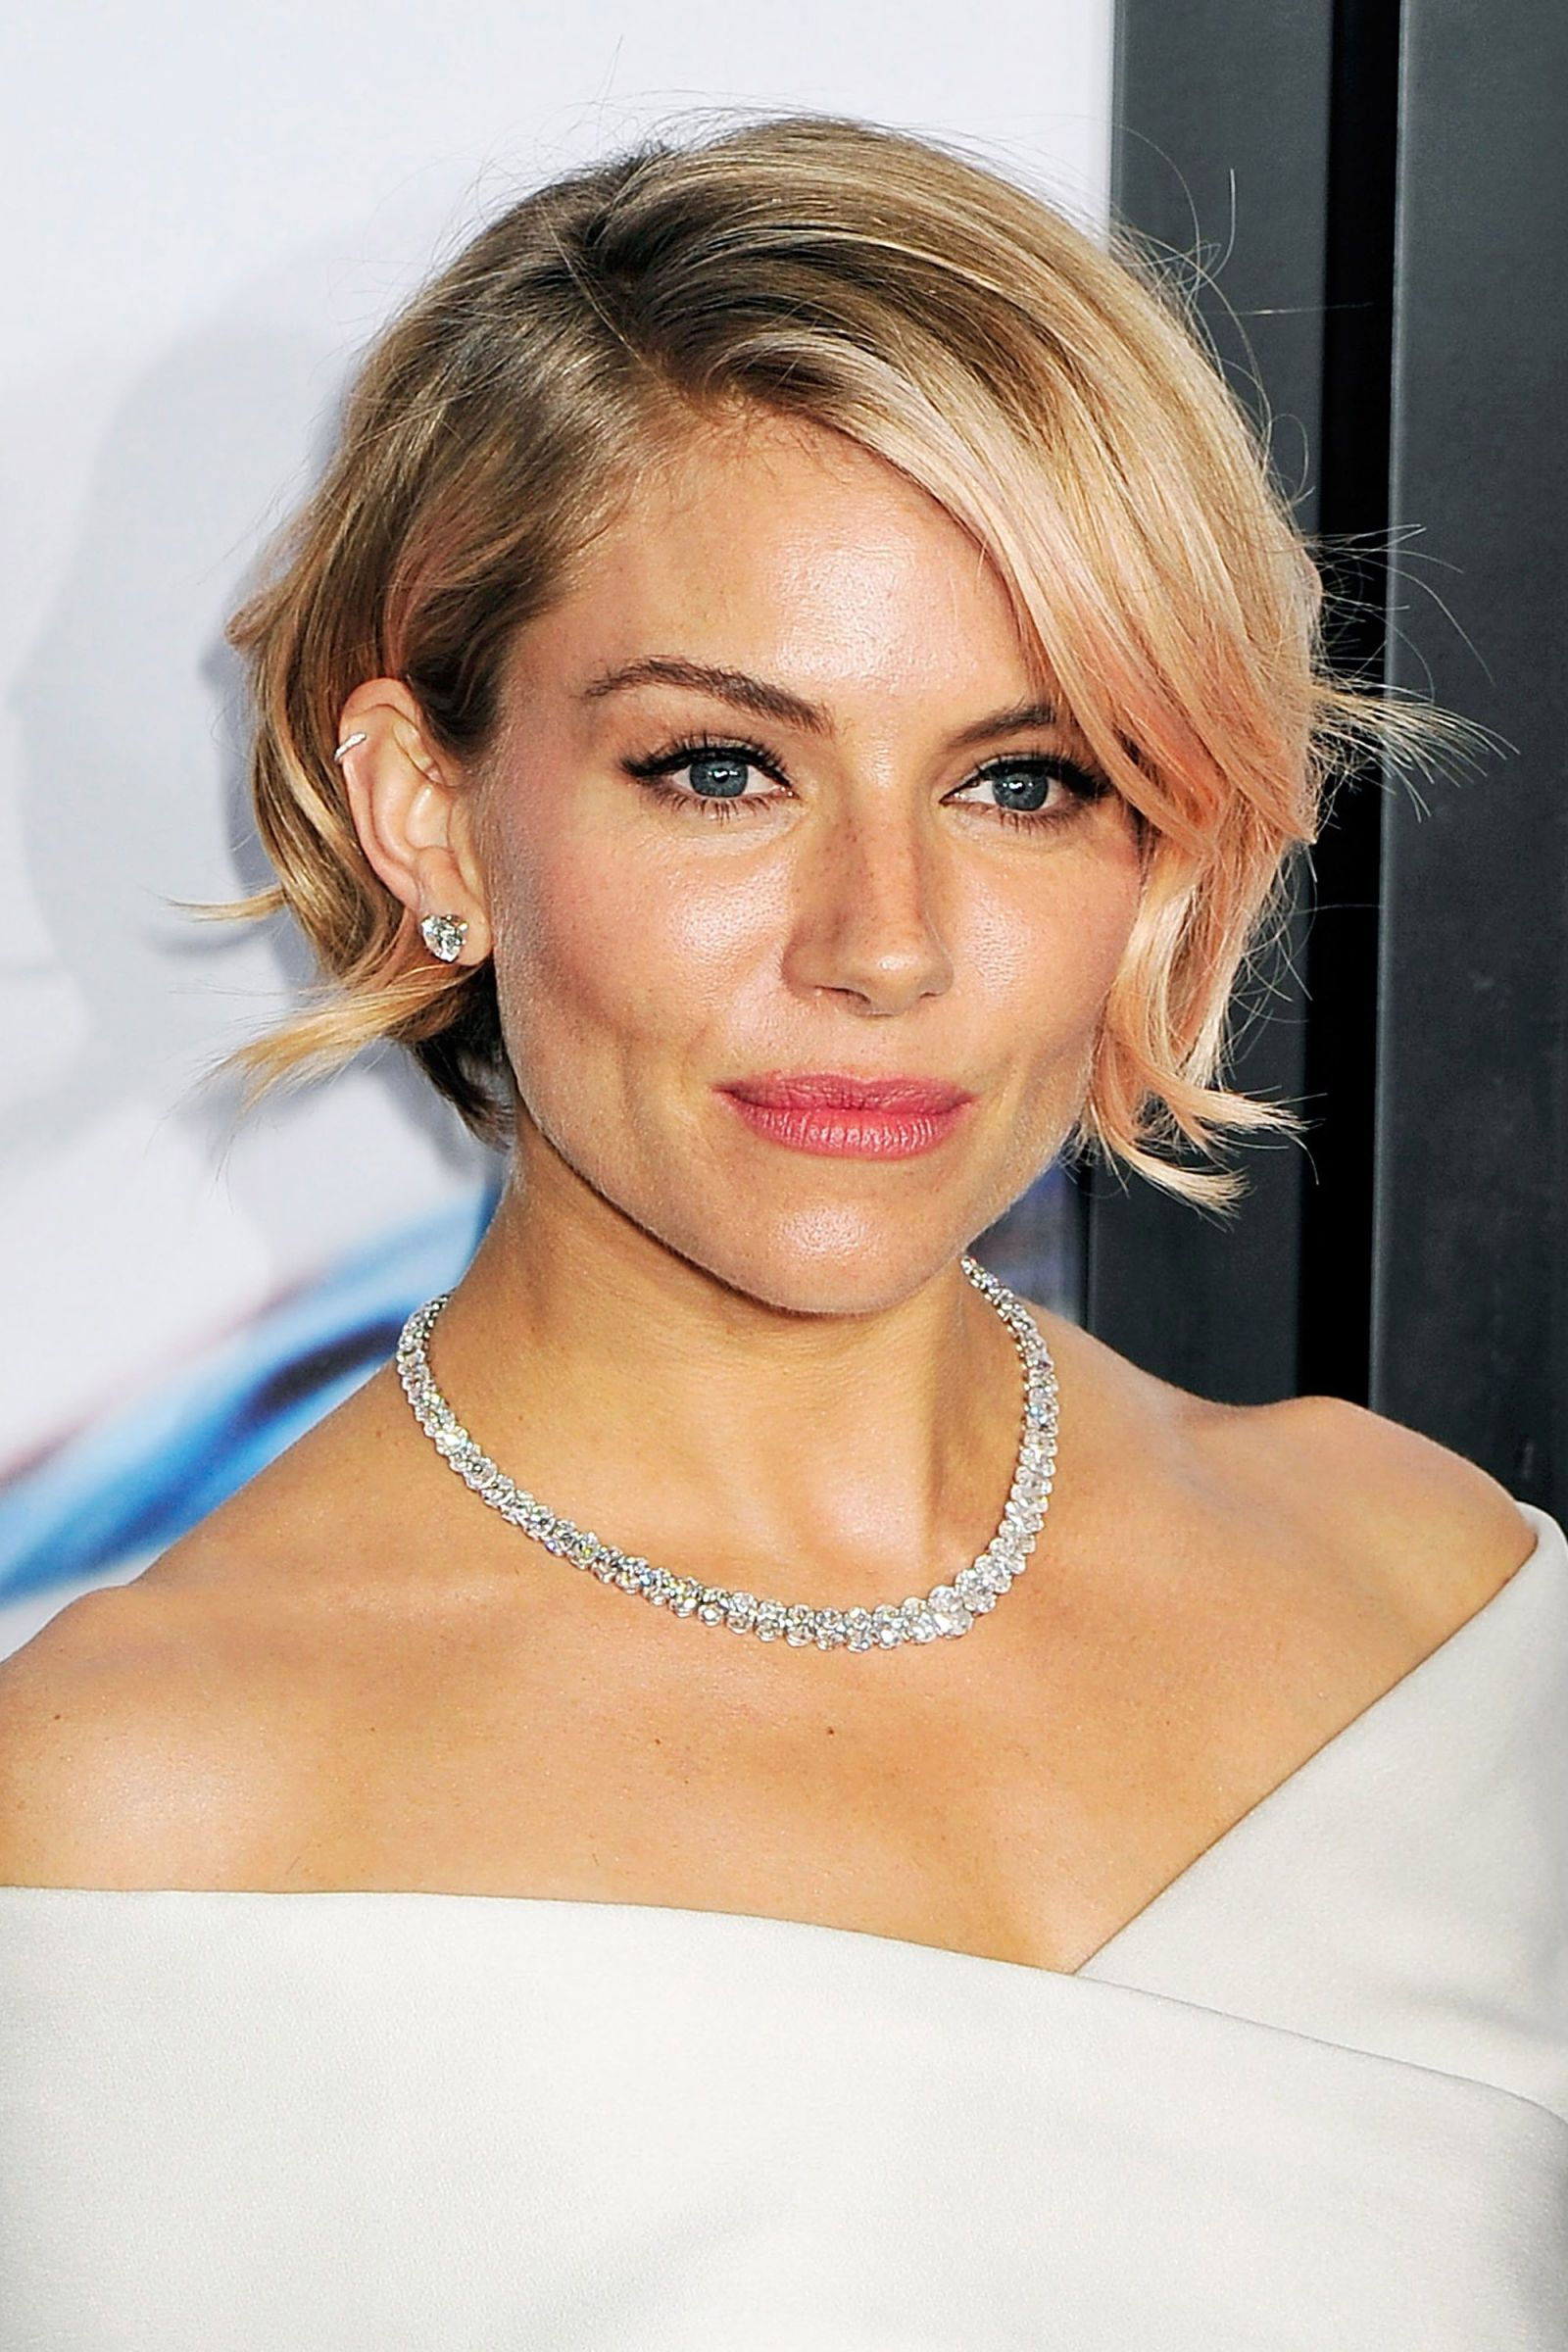 87 Cute Short Hairstyles—And How To Pull Them Off | Makeup pertaining to Short Hairstyles For Work